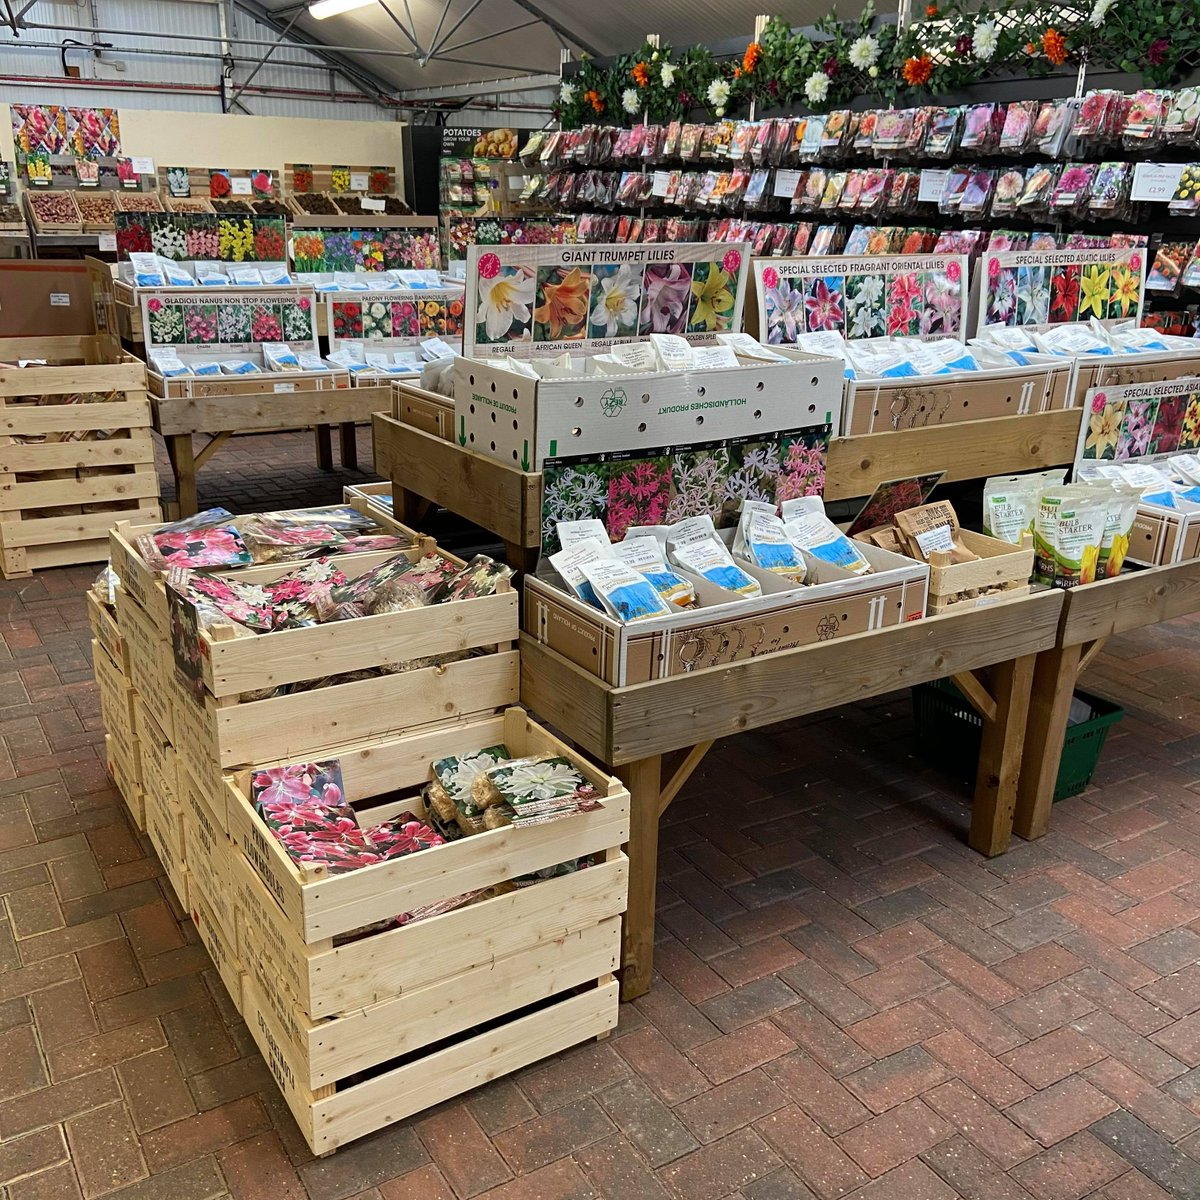 #Summer #Flowering #Bulbs  Grow something a little different this year to make your garden burst with colour in summer. Trying a new variety of flowers will broaden your growing skills and help transform any dull areas.